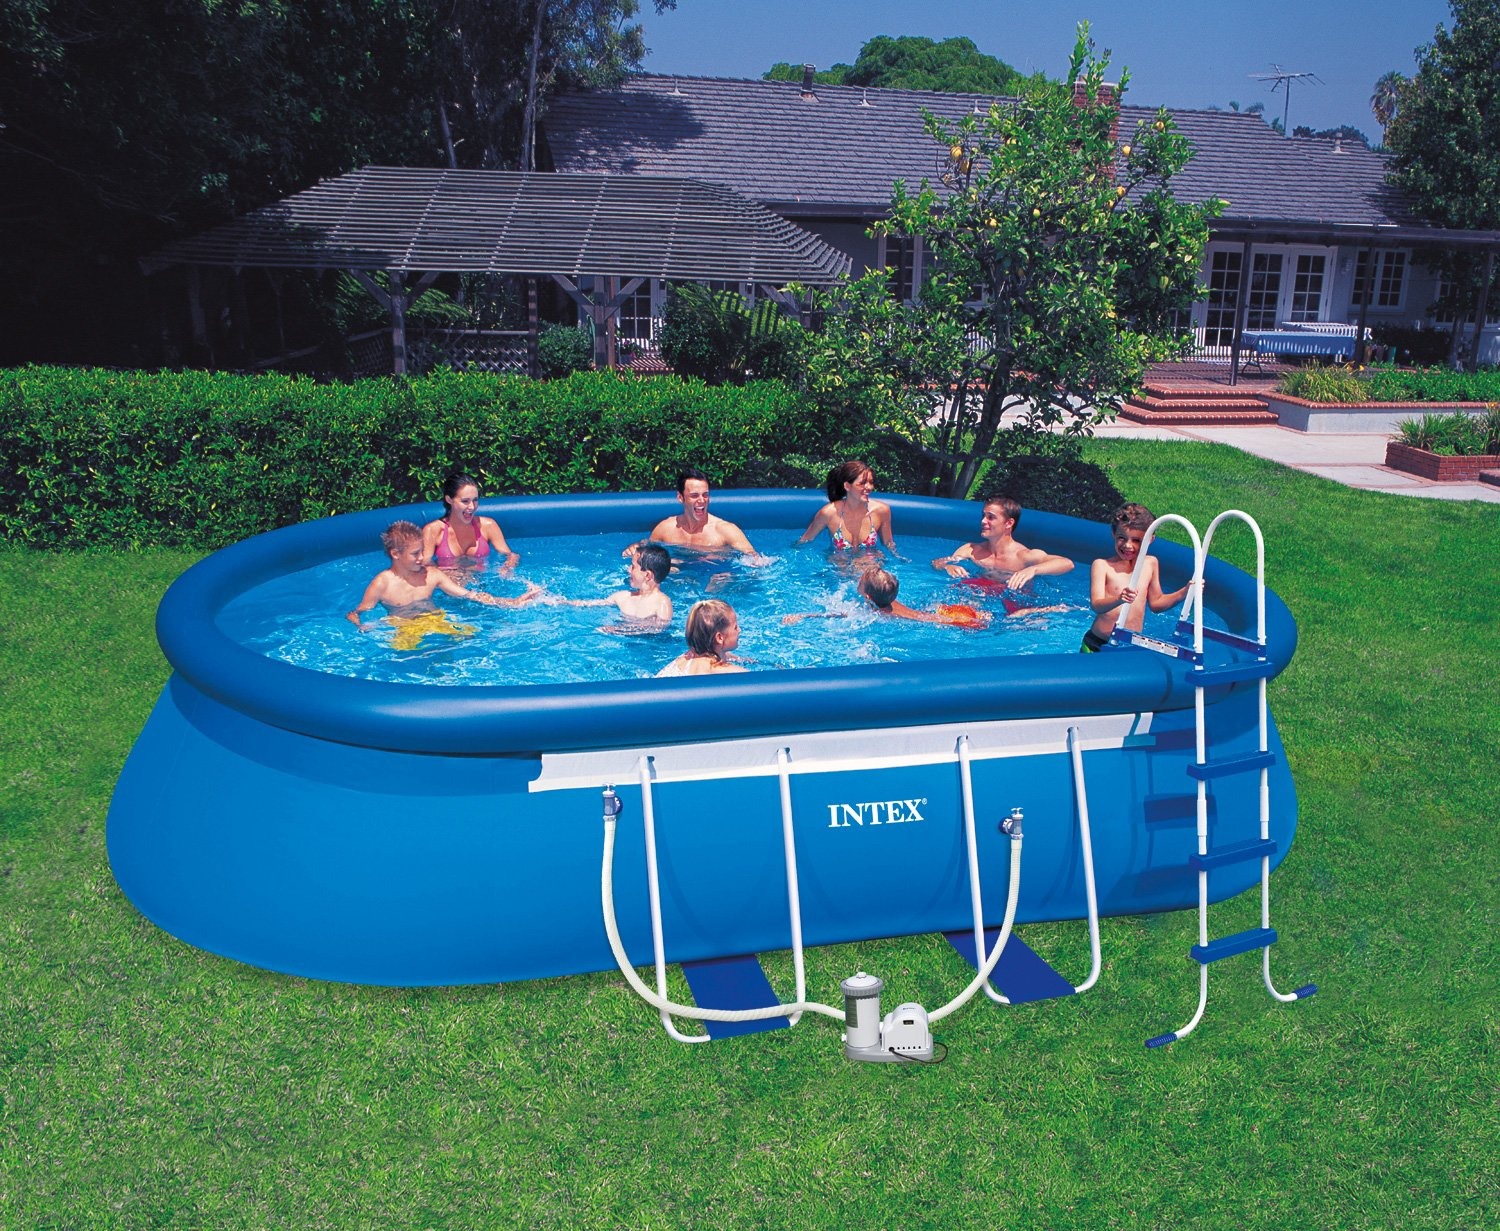 Pool Kaufen Intex Intex Pool Gnstig Kaufen Perfect Intex Pool Abdeckplane